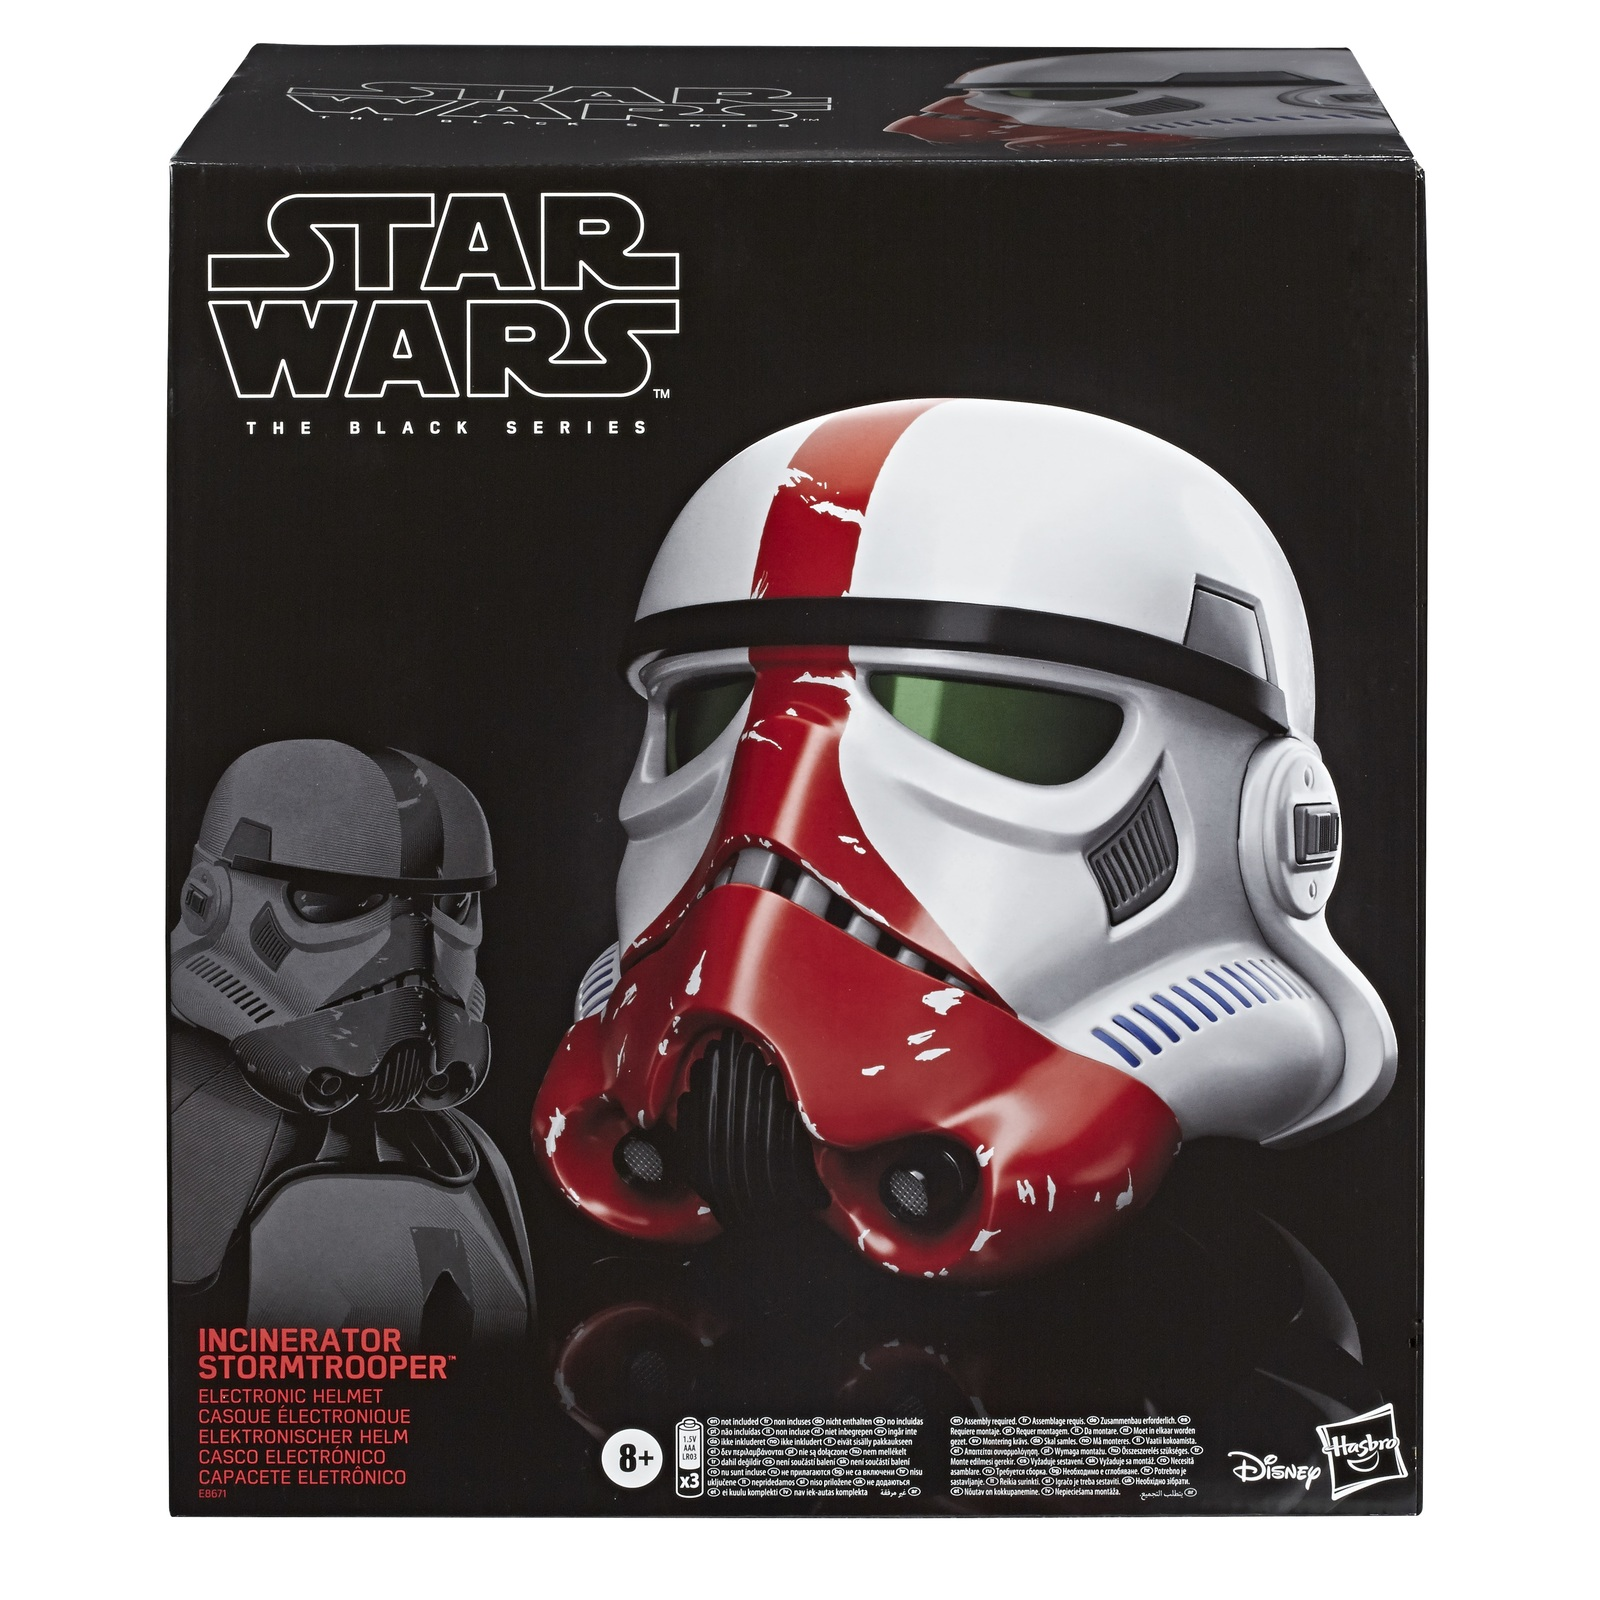 Star Wars: Black Series Helmet - Incinerator Stormtrooper image